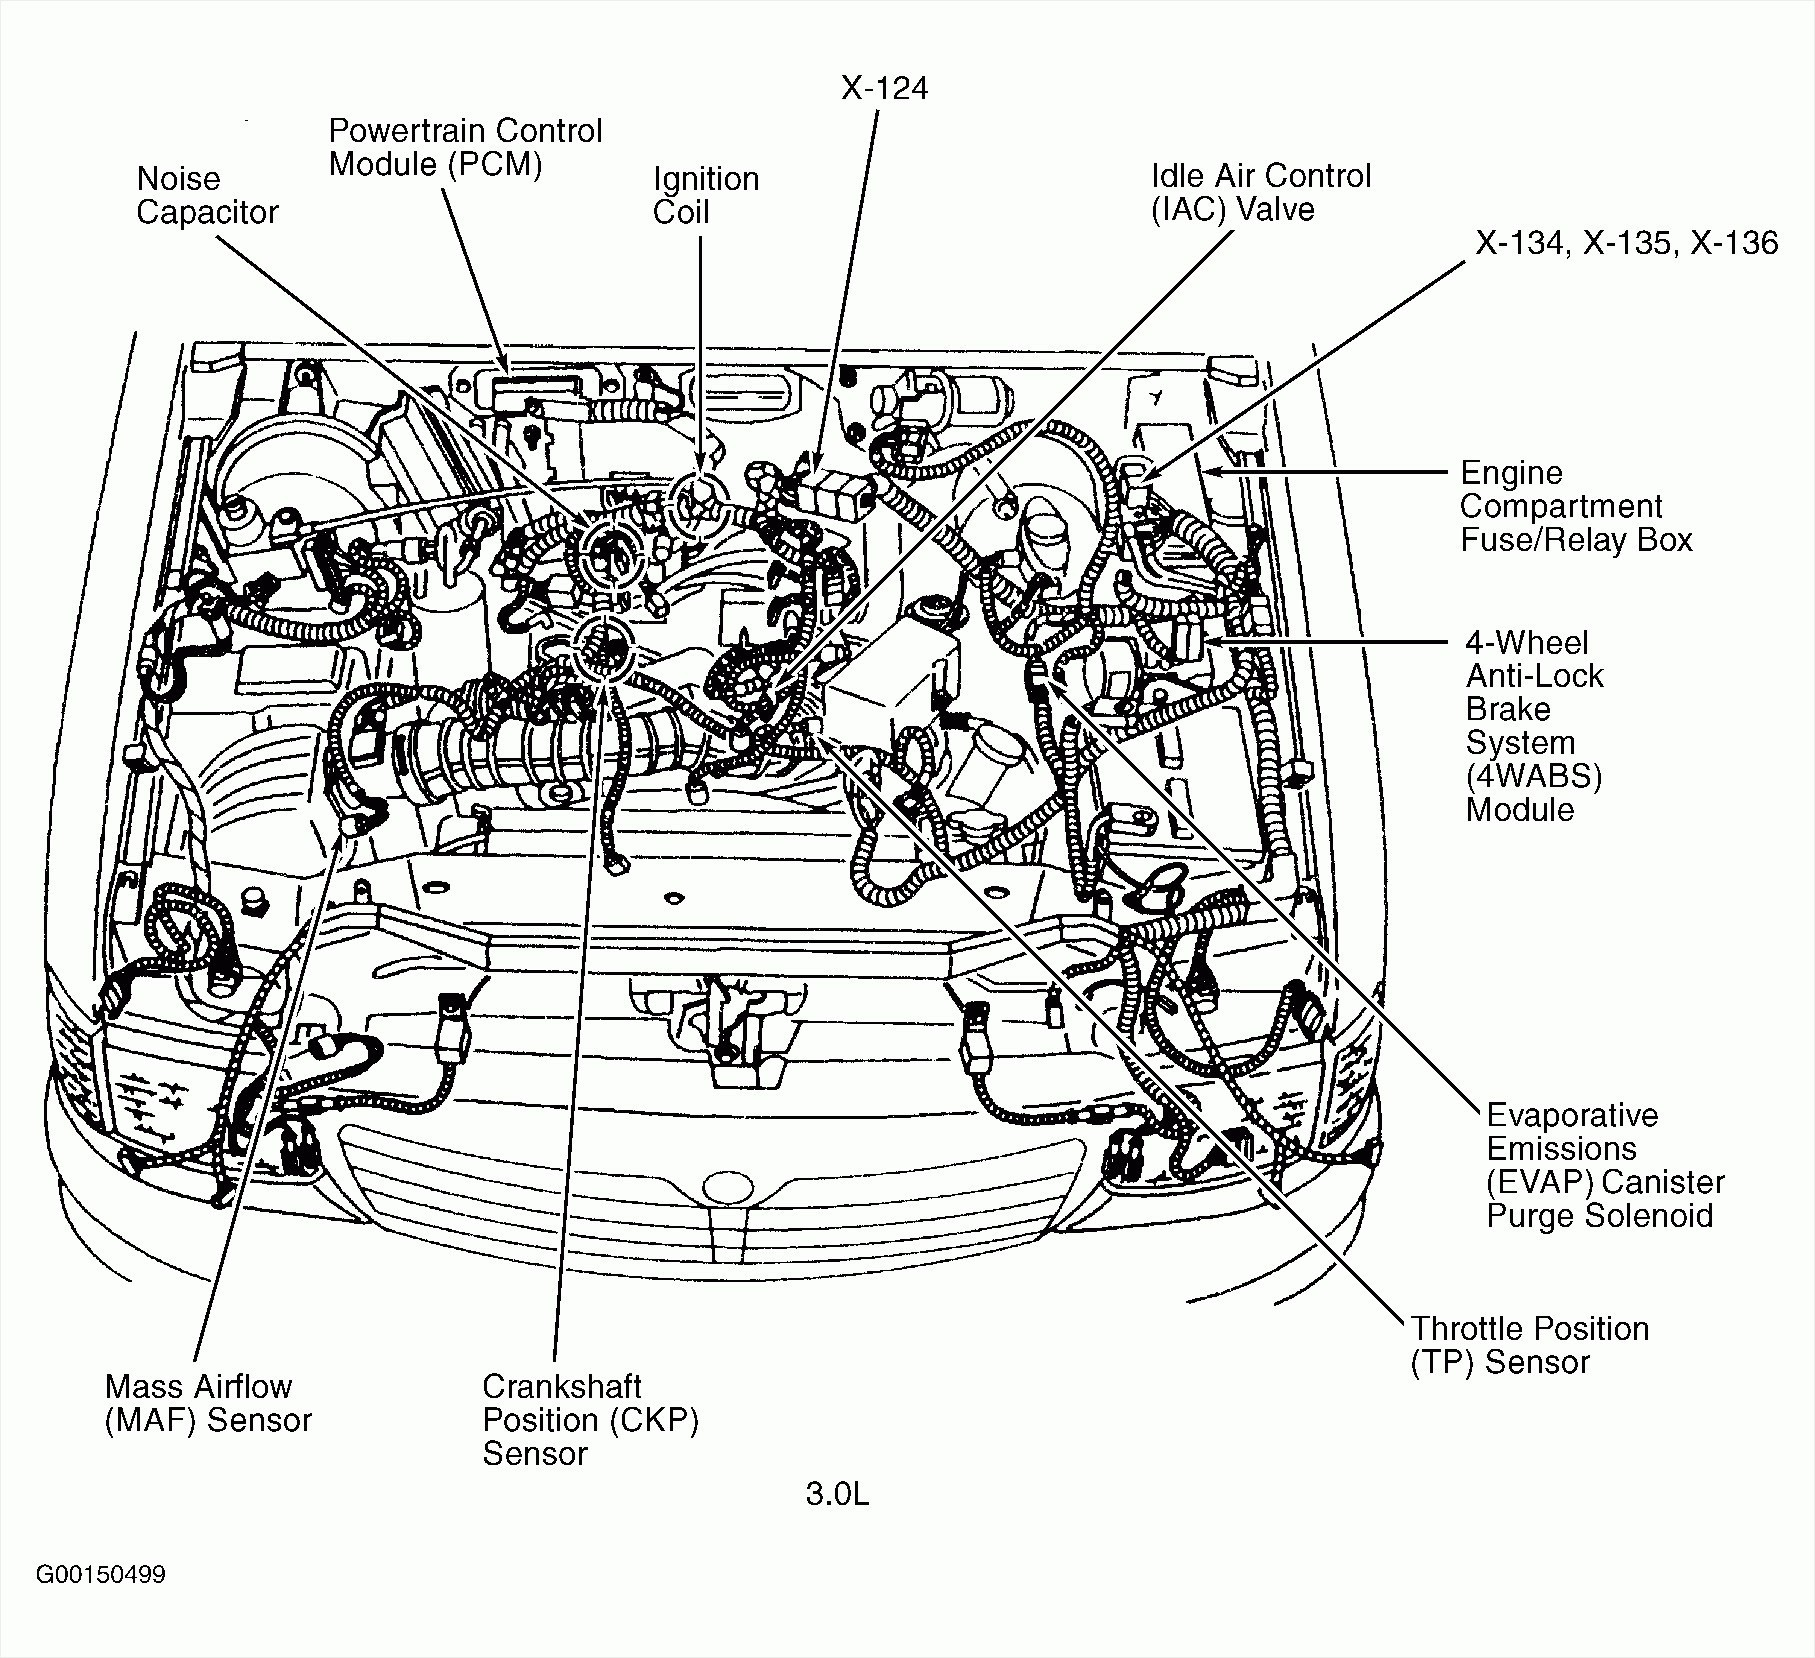 99 ford Mustang Engine Parts Diagram K2 Vw Jetta Engine Diagram Superwinch Wiring Diagram for Of 99 ford Mustang Engine Parts Diagram